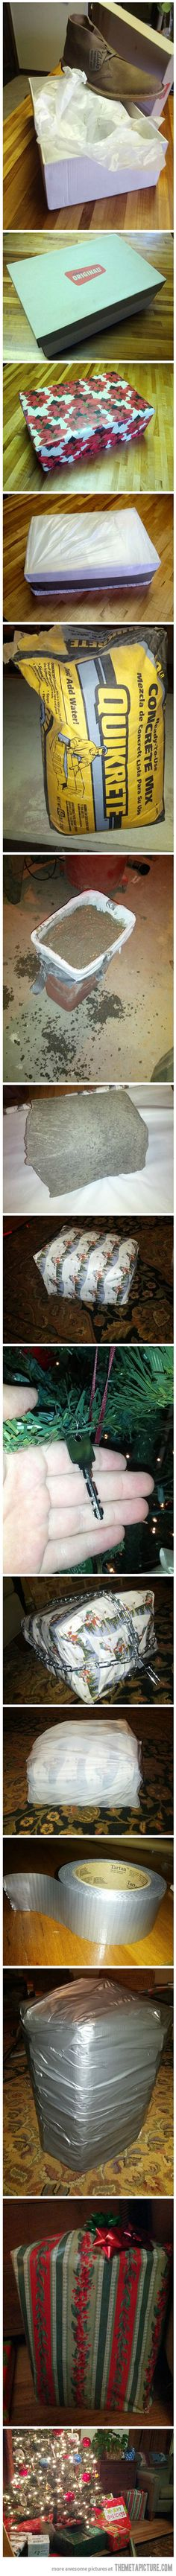 How to Properly Wrap a Present…@Aliyah Kimmey you dad needs to use this method with you around the house!!! lol